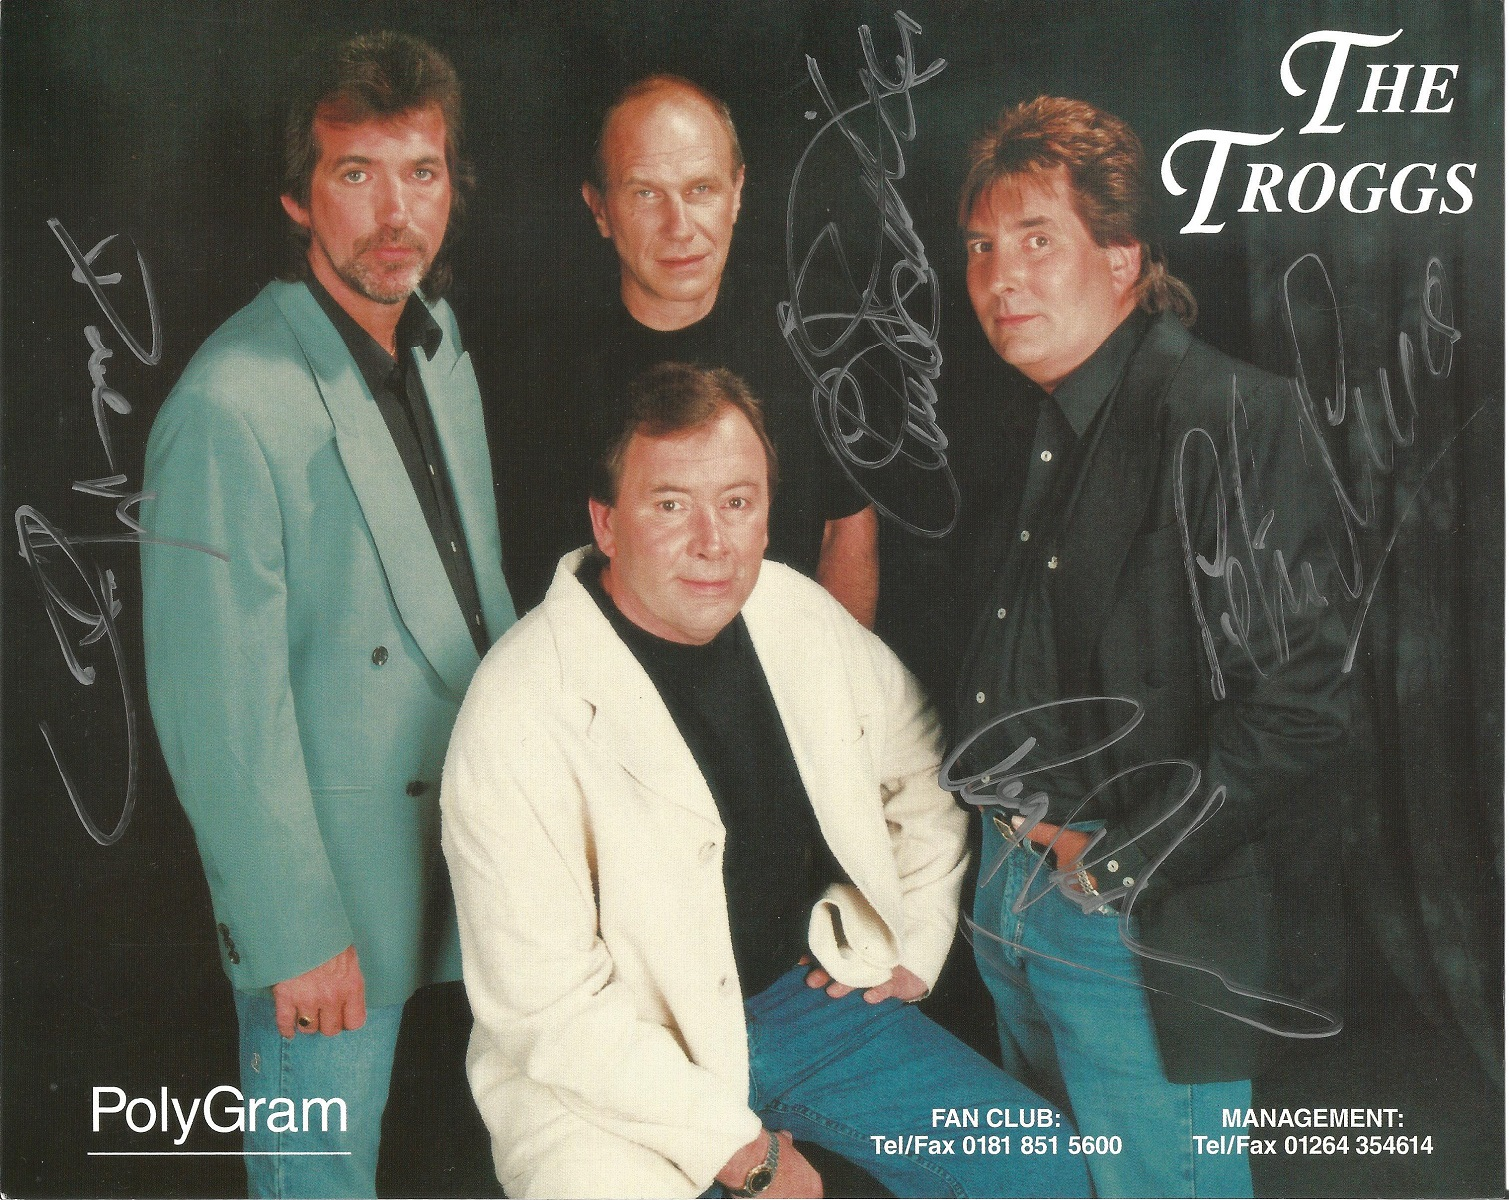 THE TROGGS Rock Band signed 8x10 Polygram Promo Photo . Good condition. All autographs come with a